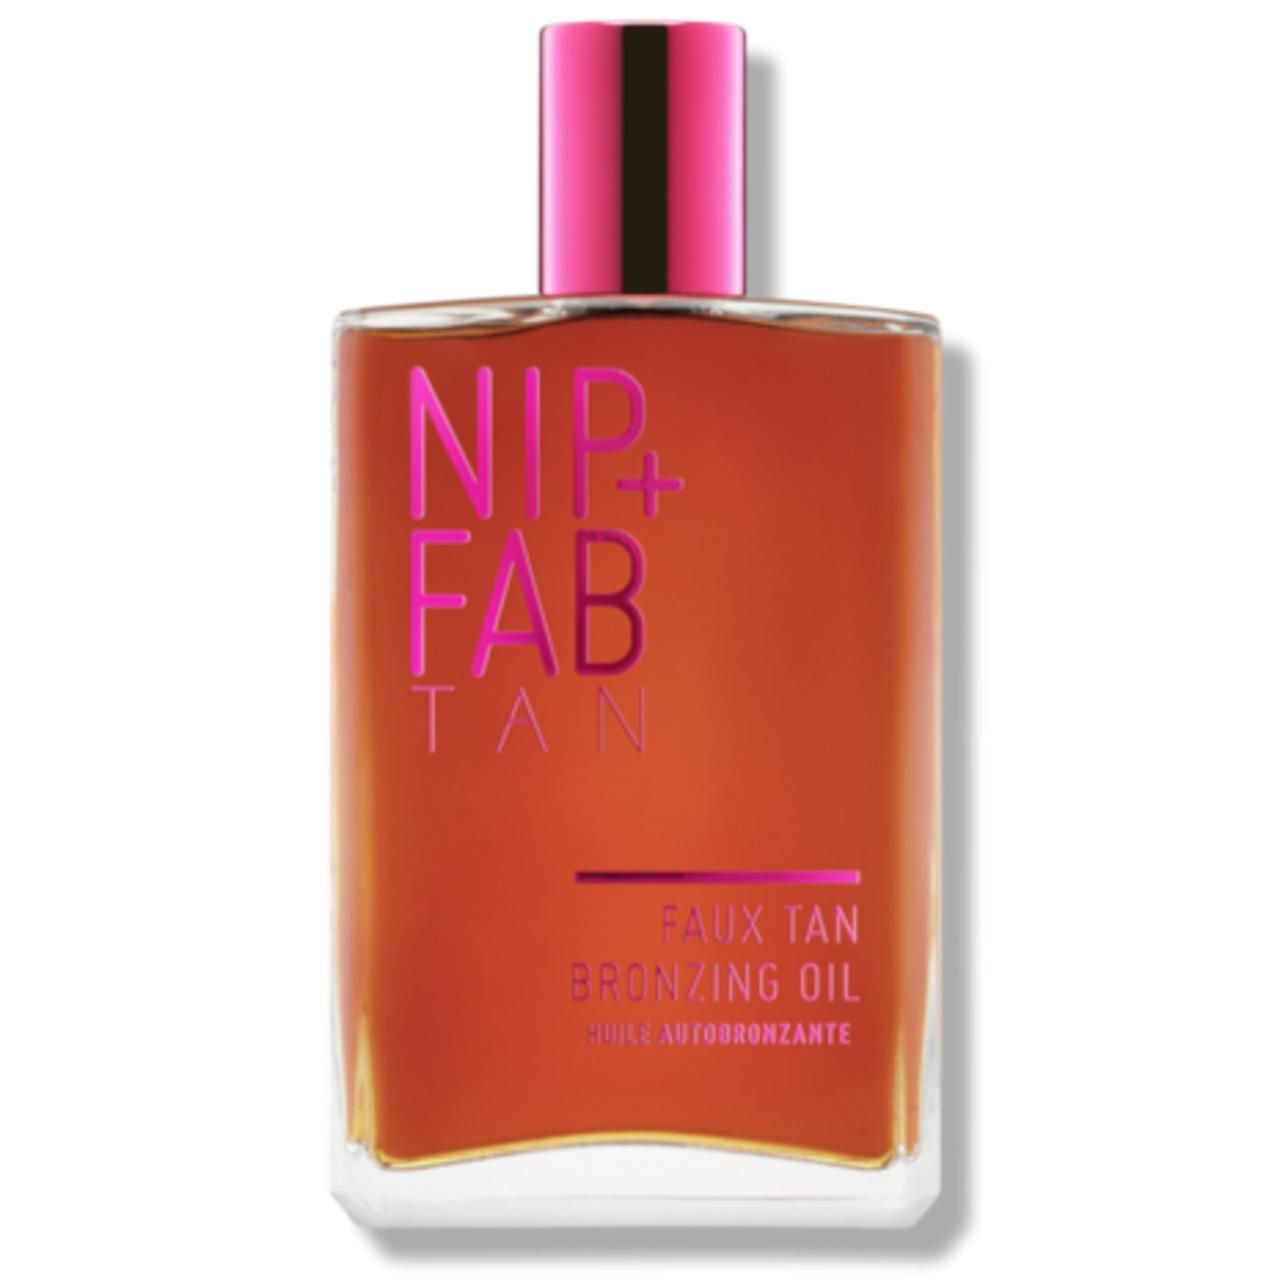 Nip+Fab Faux Tan Bronzing Oil.